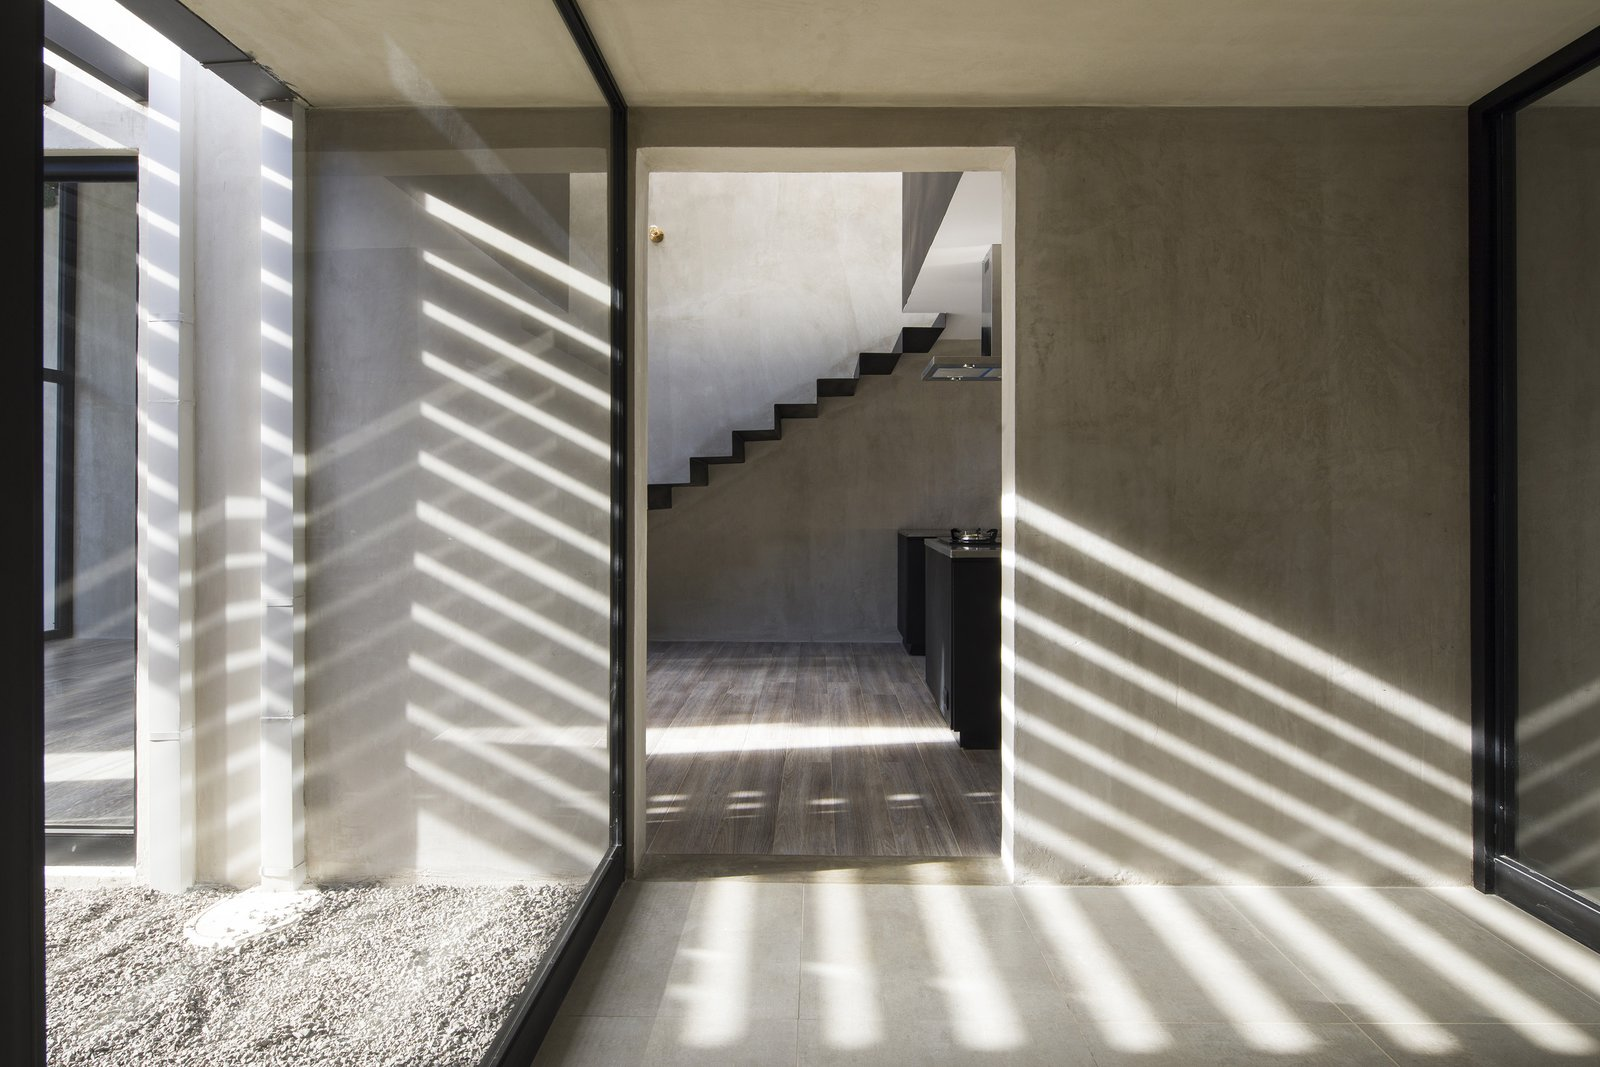 Tagged: Hallway and Porcelain Tile Floor.  Casa Ching by MG design studio